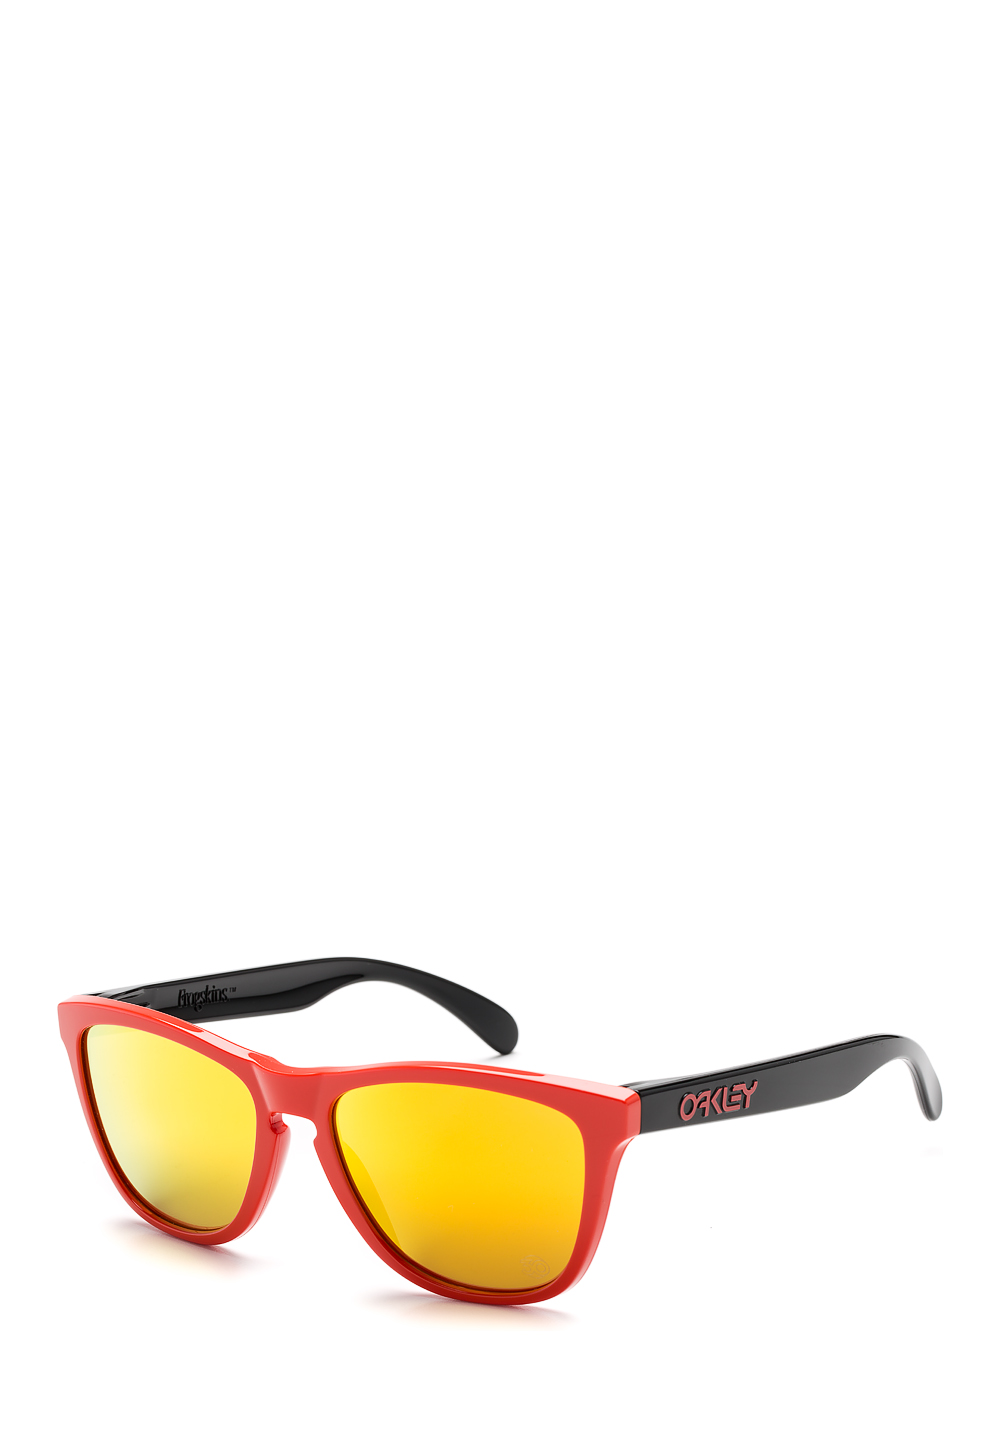 Sonnenbrille Frogskins, UV 400, orange